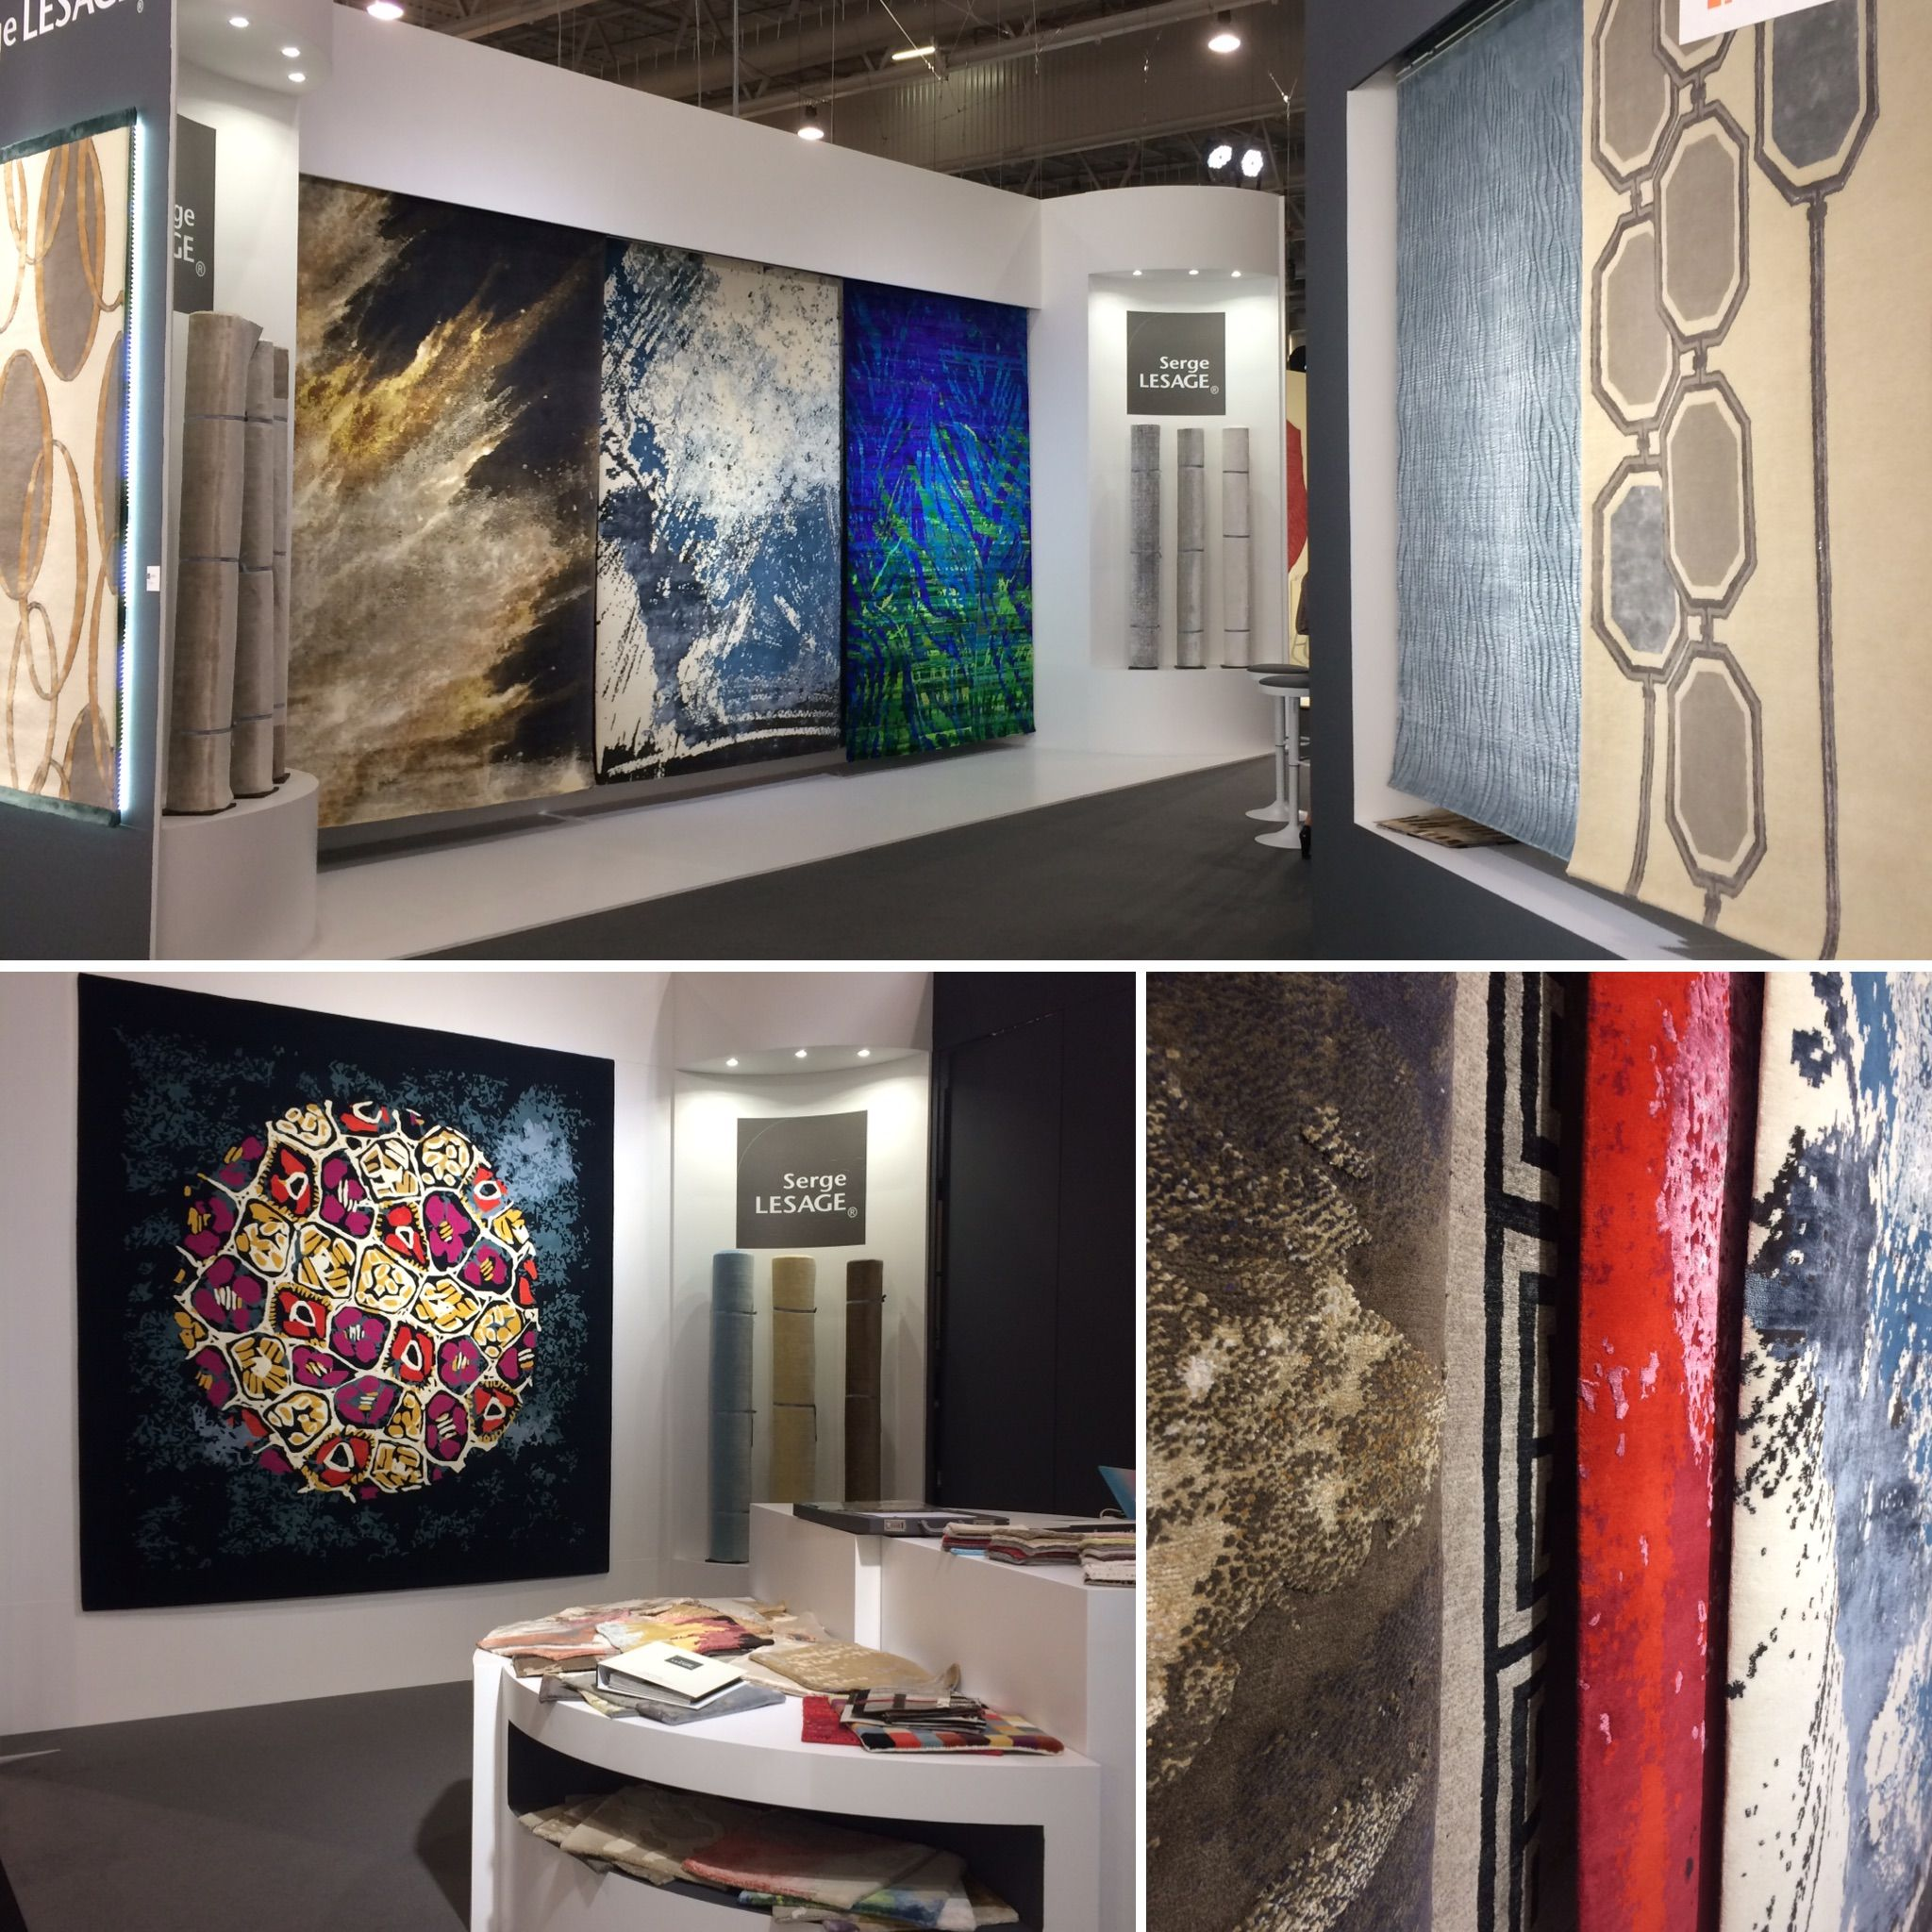 Maison&Objet Fair in Paris - #MO17, PARIS - #SERGELESAGE - Stand E68 F67 / Hall 7 - NOW!